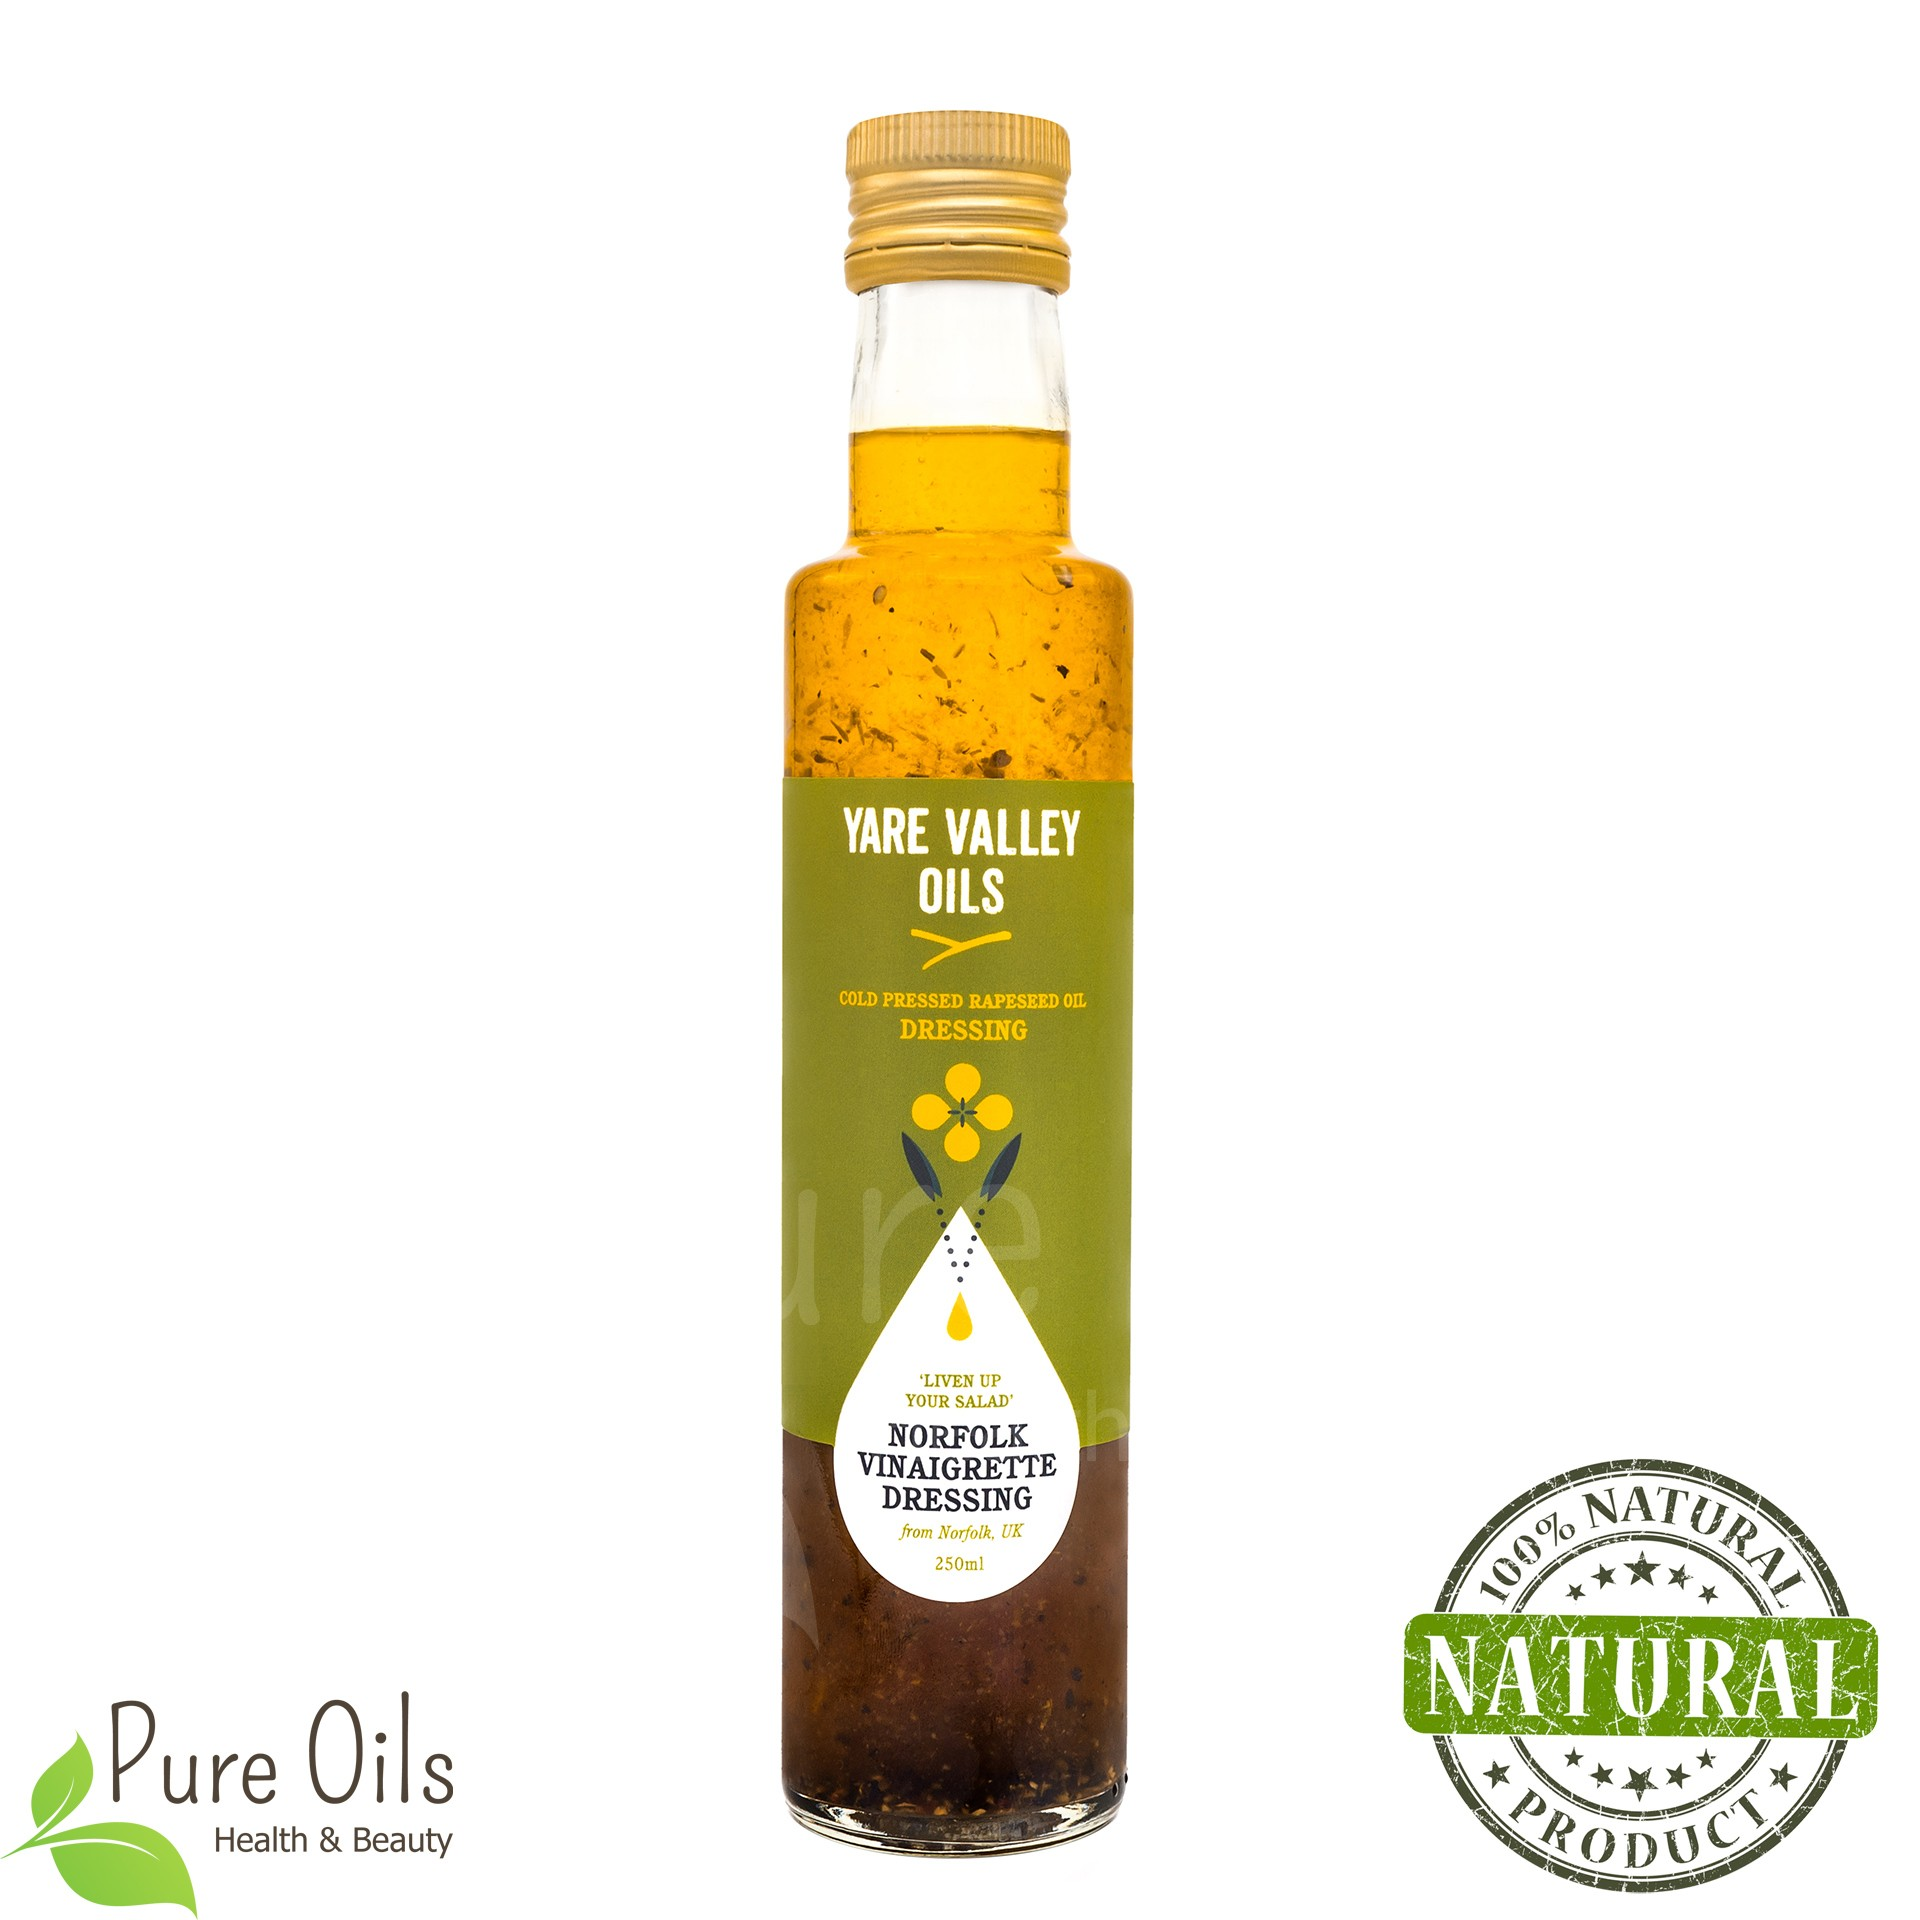 Vinaigrette Dressing, Cold Pressed Rapeseed Oil, Yare Valley